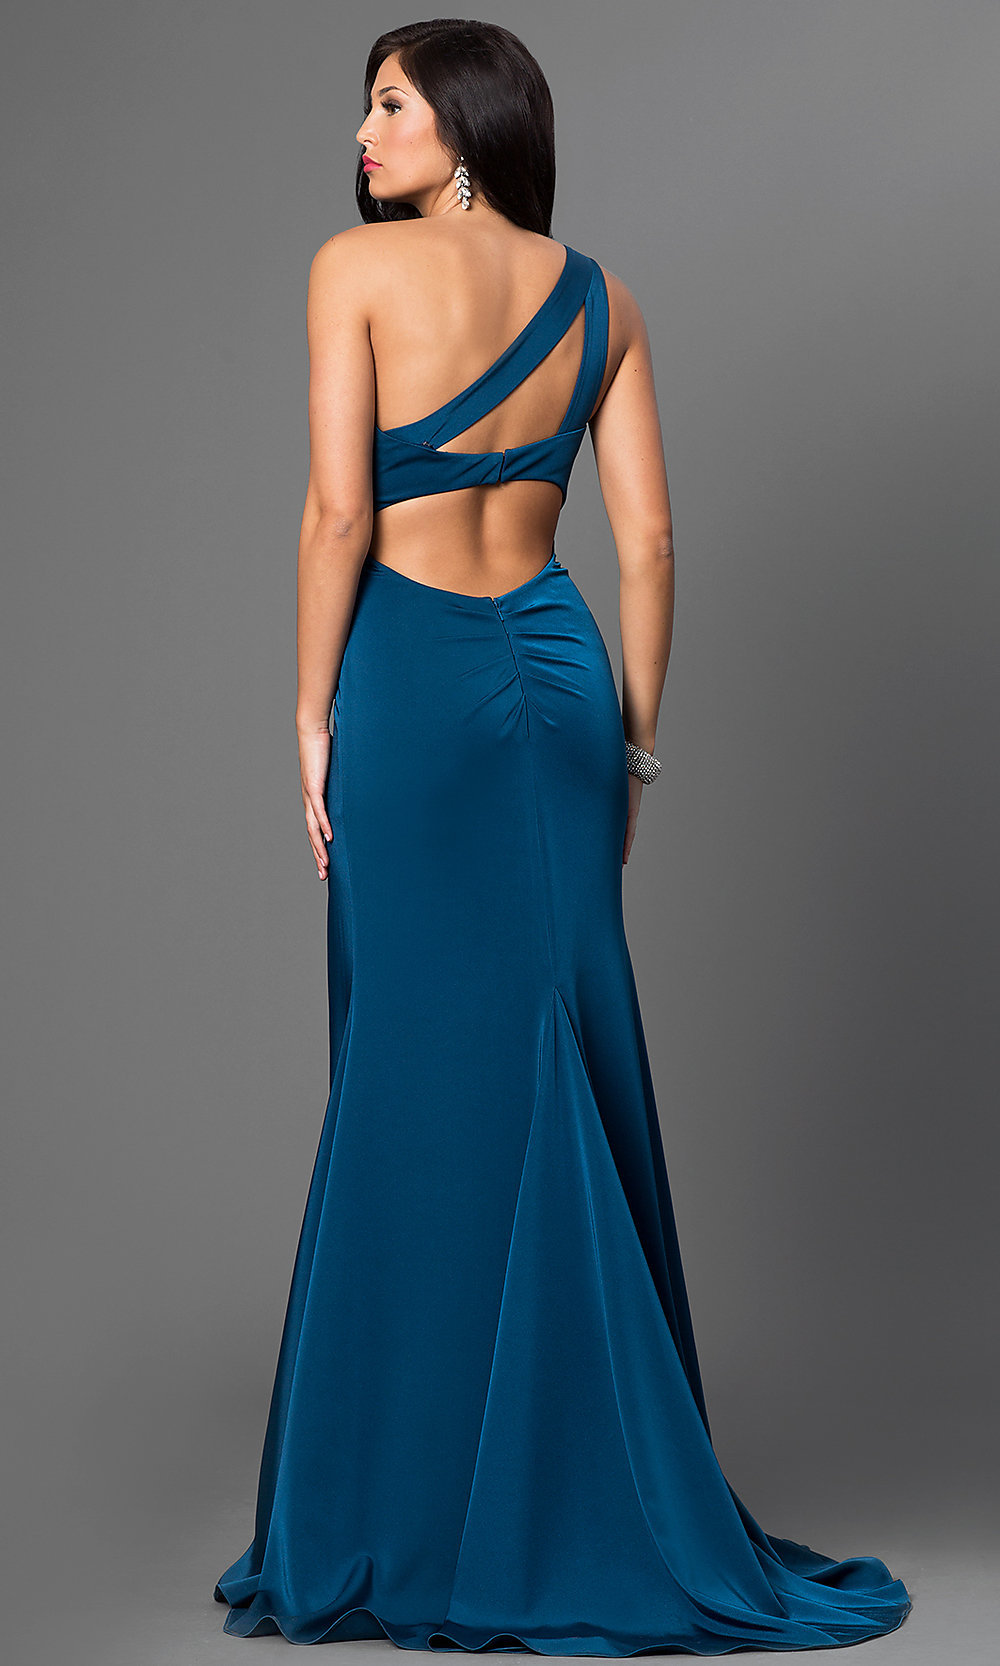 Long One-Shoulder Prom Dress with Train - PromGirl